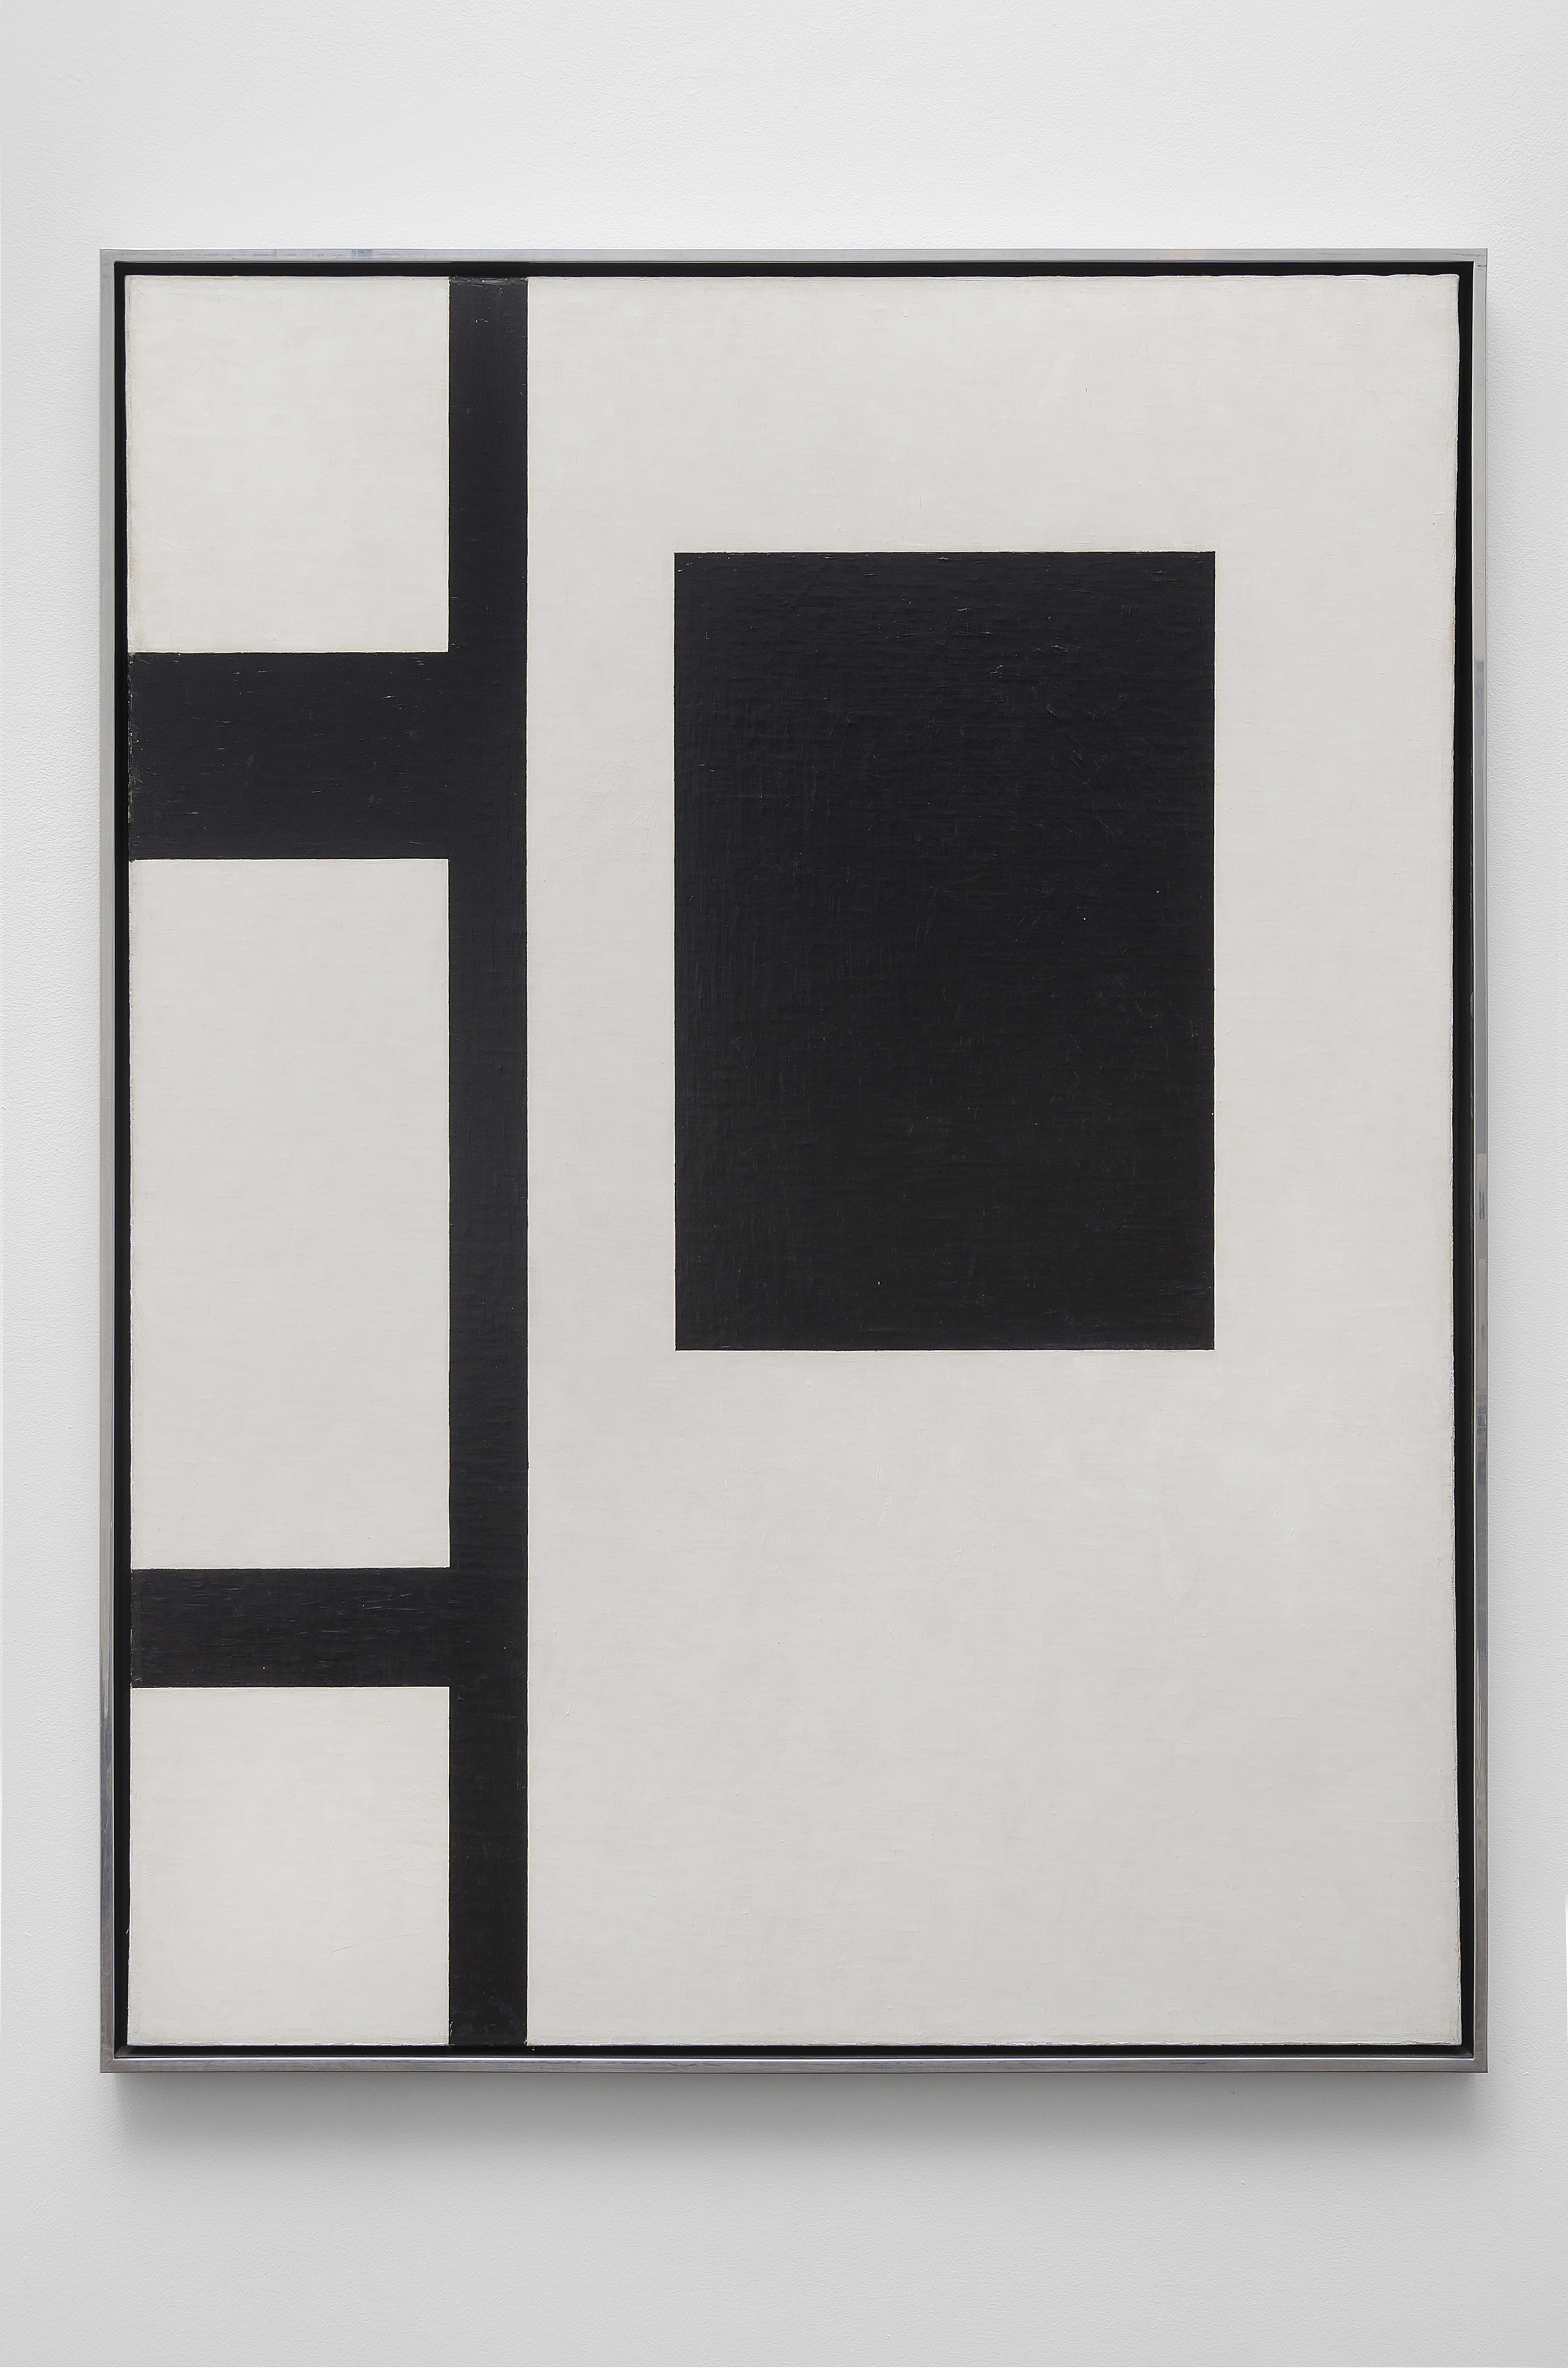 Untitled Composition , 1953 oil on canvas 48 x 36 inches; 121.9 x 91.4 centimeters